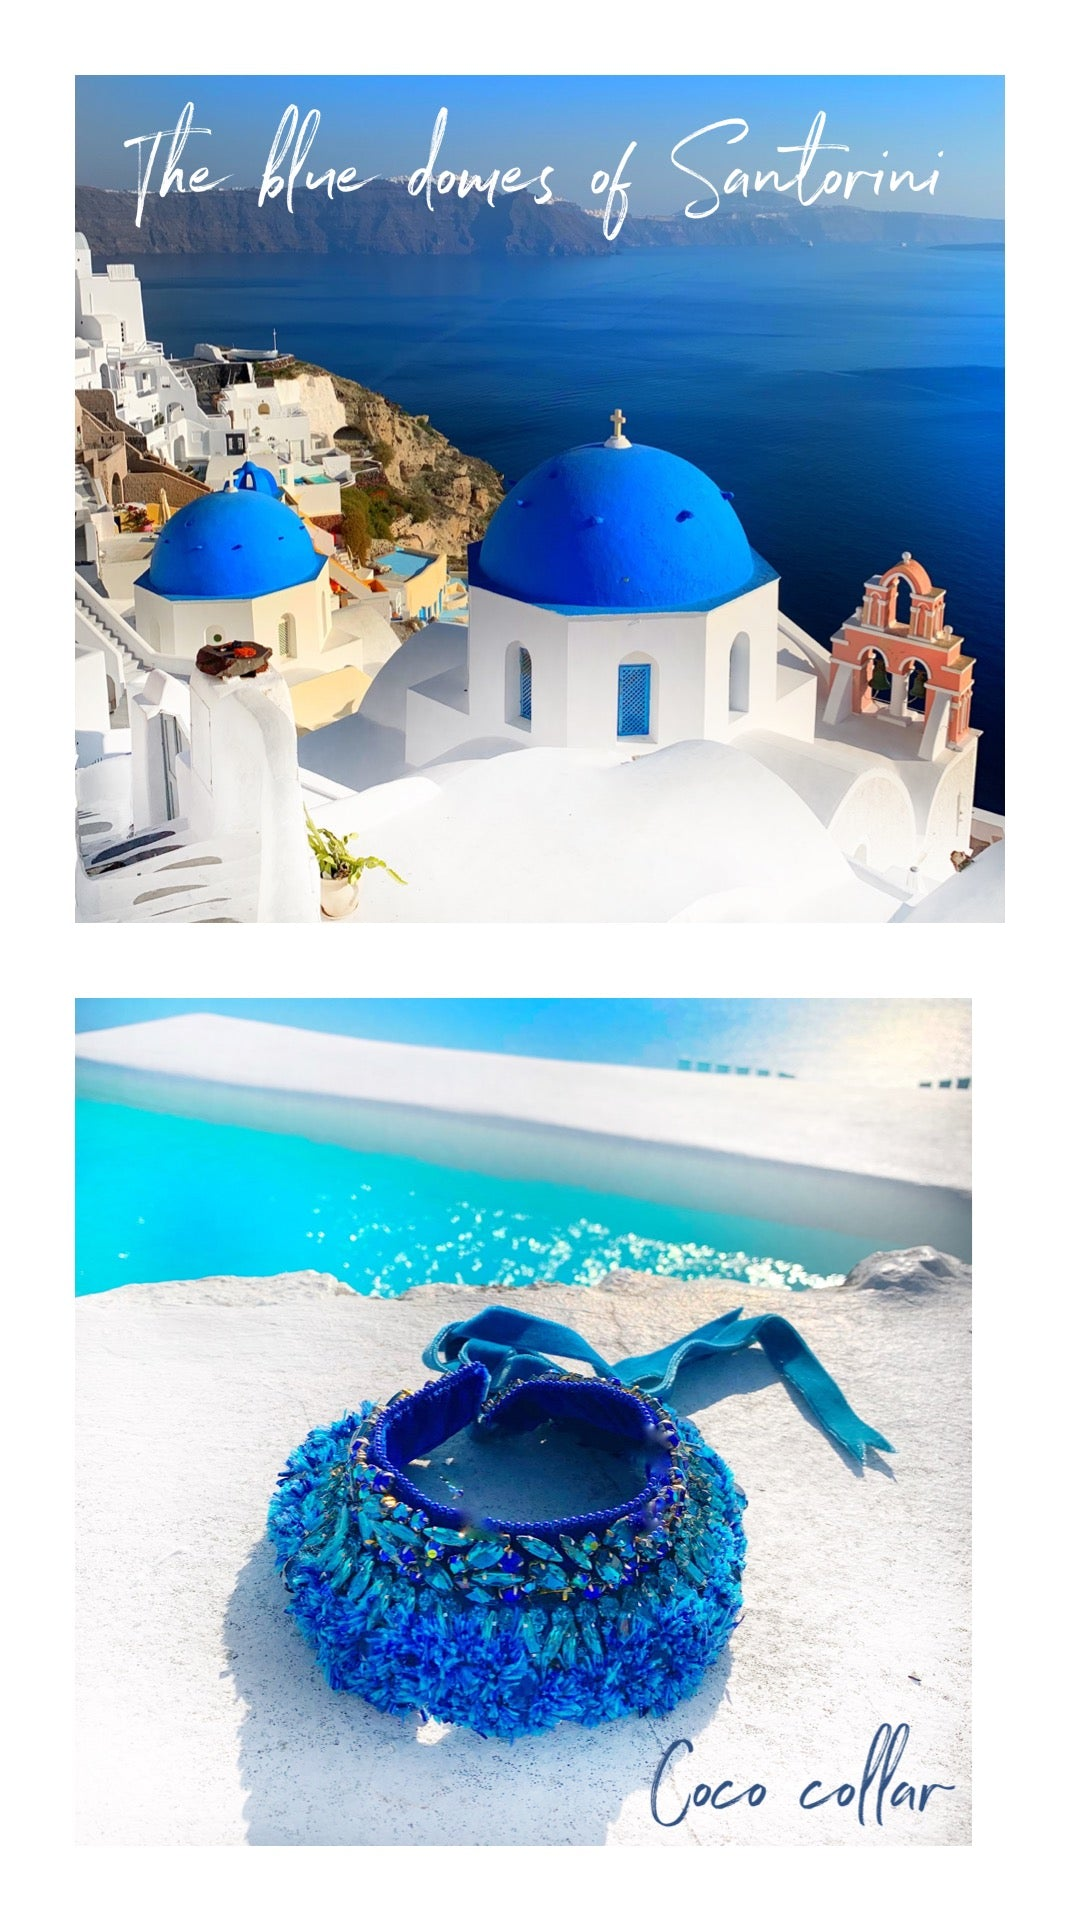 Blue domes of Santorini and Jolita Jewellery's Coco collar